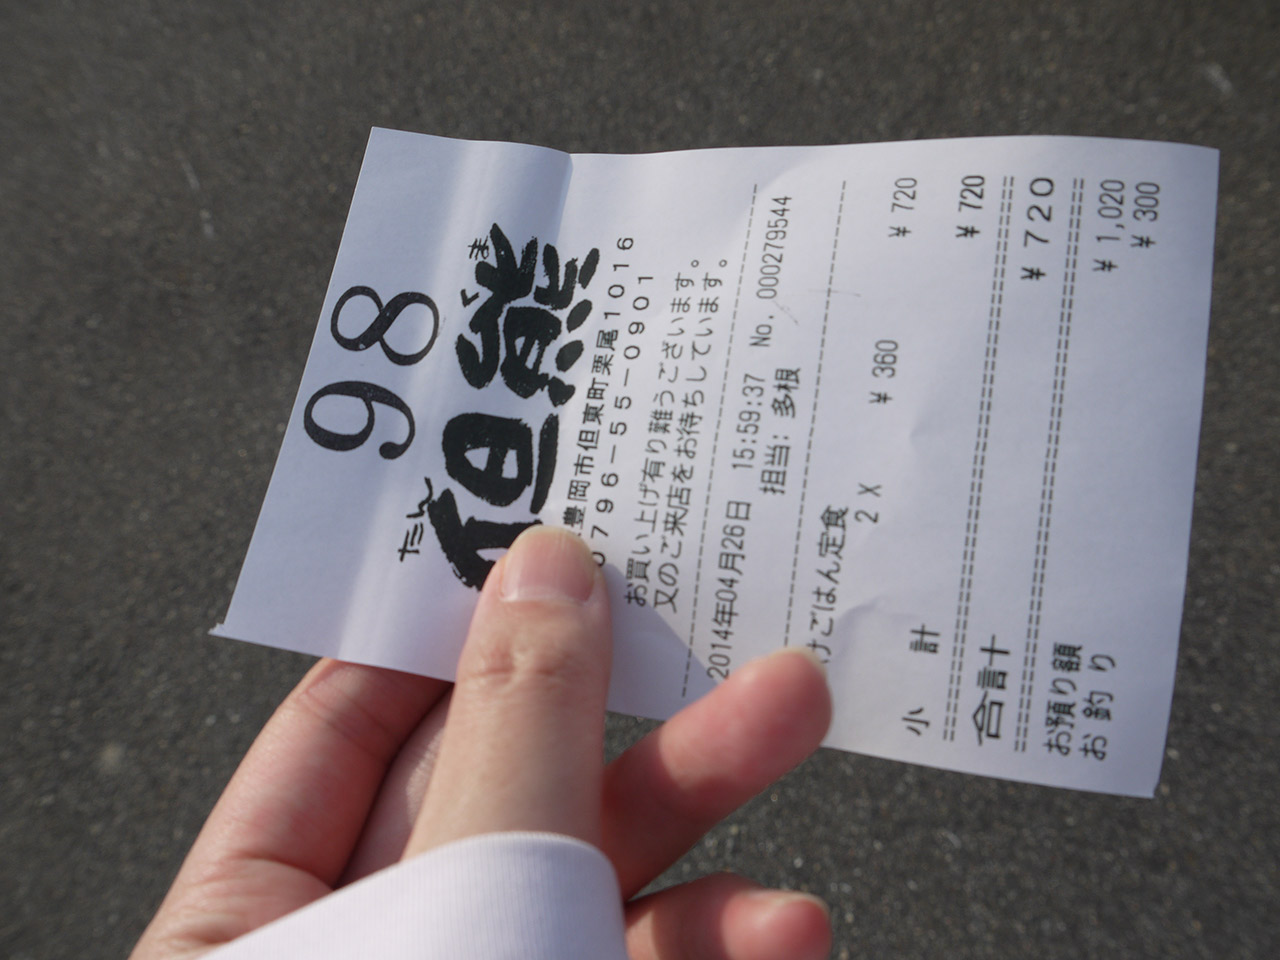 a receipt in japanese with the number 98 at the top